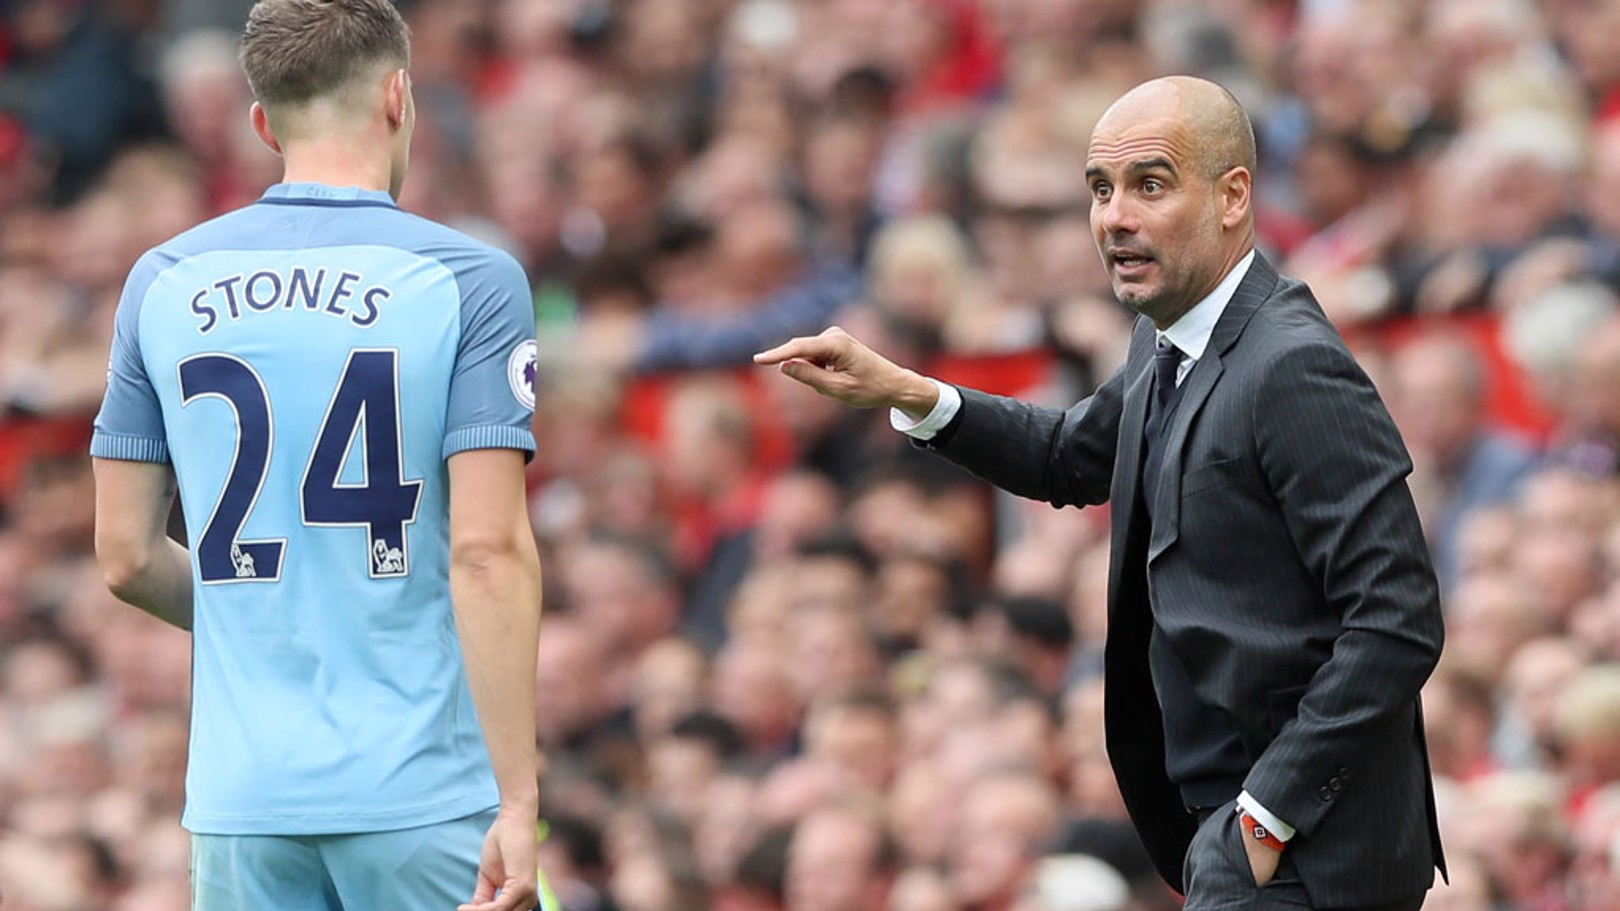 PEP GUARDIOLA: Giving instructions to John Stones